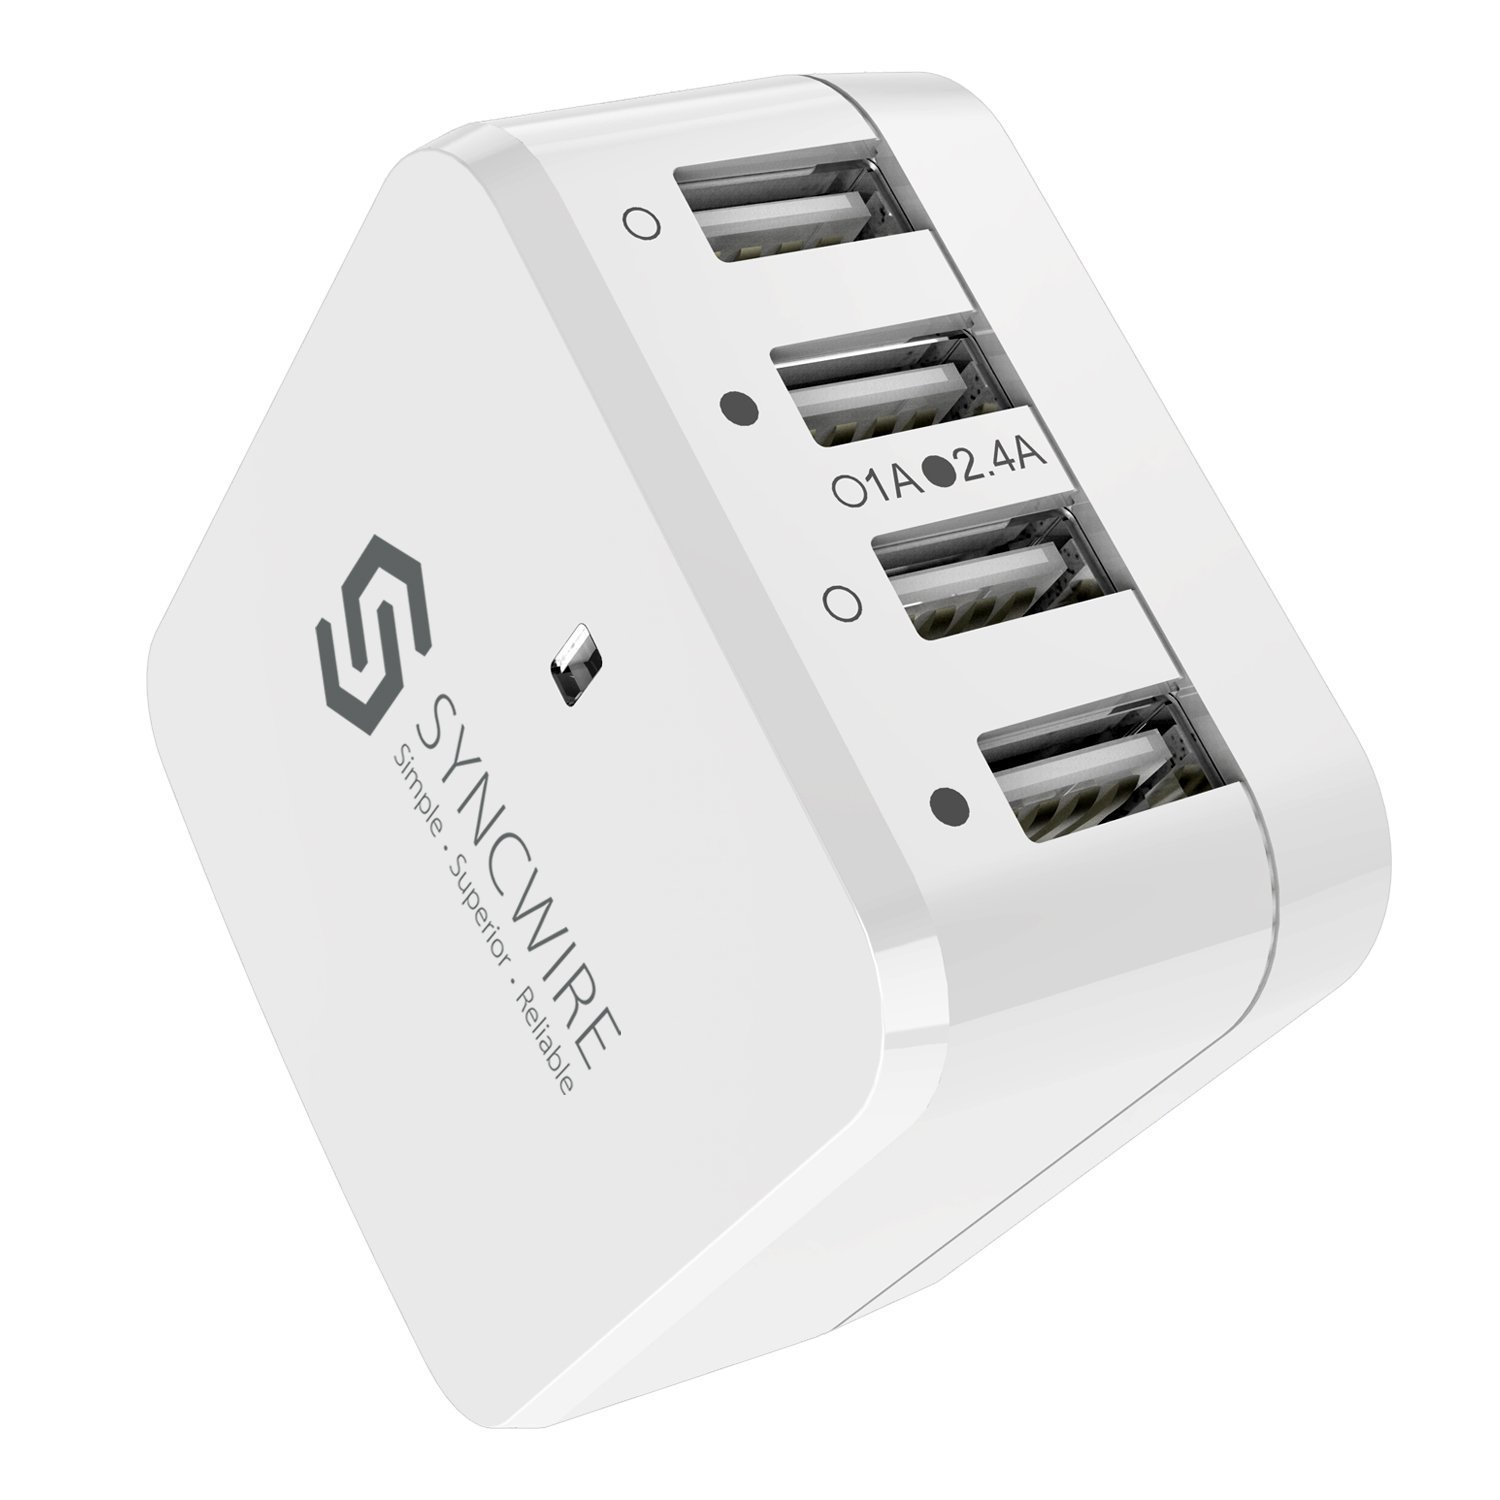 Syncwire 34W 4-Port USB Wall Charger, Multi-Port [Foldable US Plug] Travel Power Adapter with Interchangeable UK/EU Plug for Apple iPhone, iPad, Samsung, Android Phones, Tablets & More - White